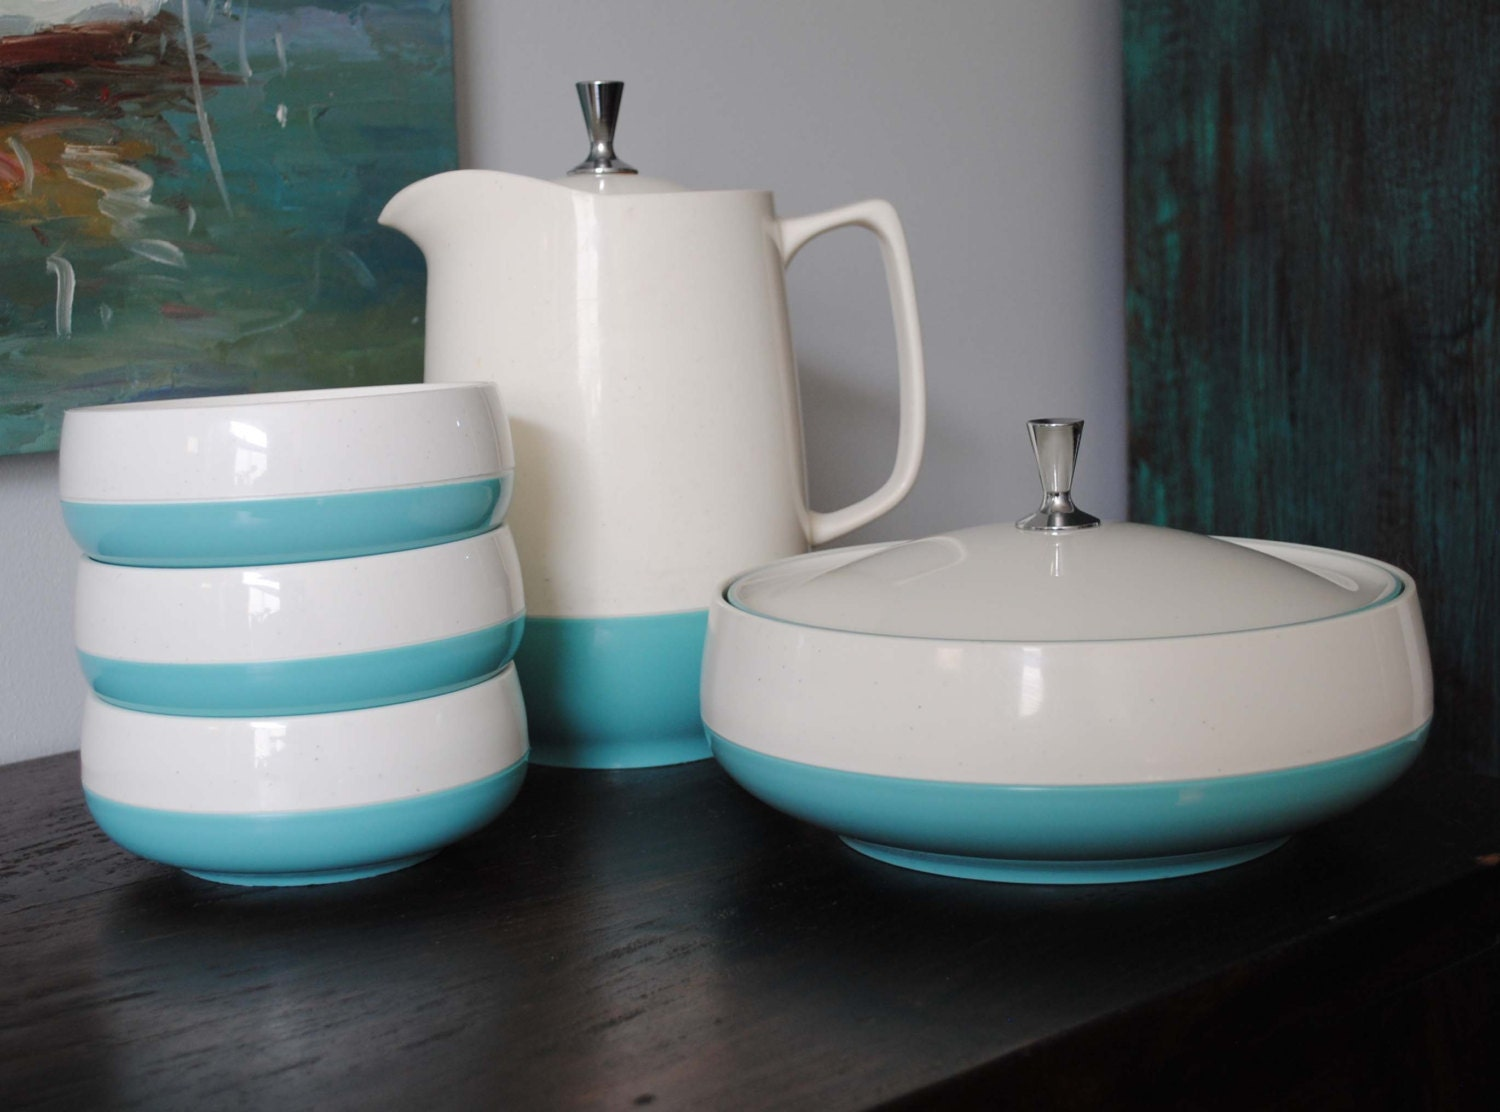 1950s Retro AQUA Vacron Bopp Decker Insulated Serving Set Bowls Pitcher Serving Bowl - BridgetsCollection